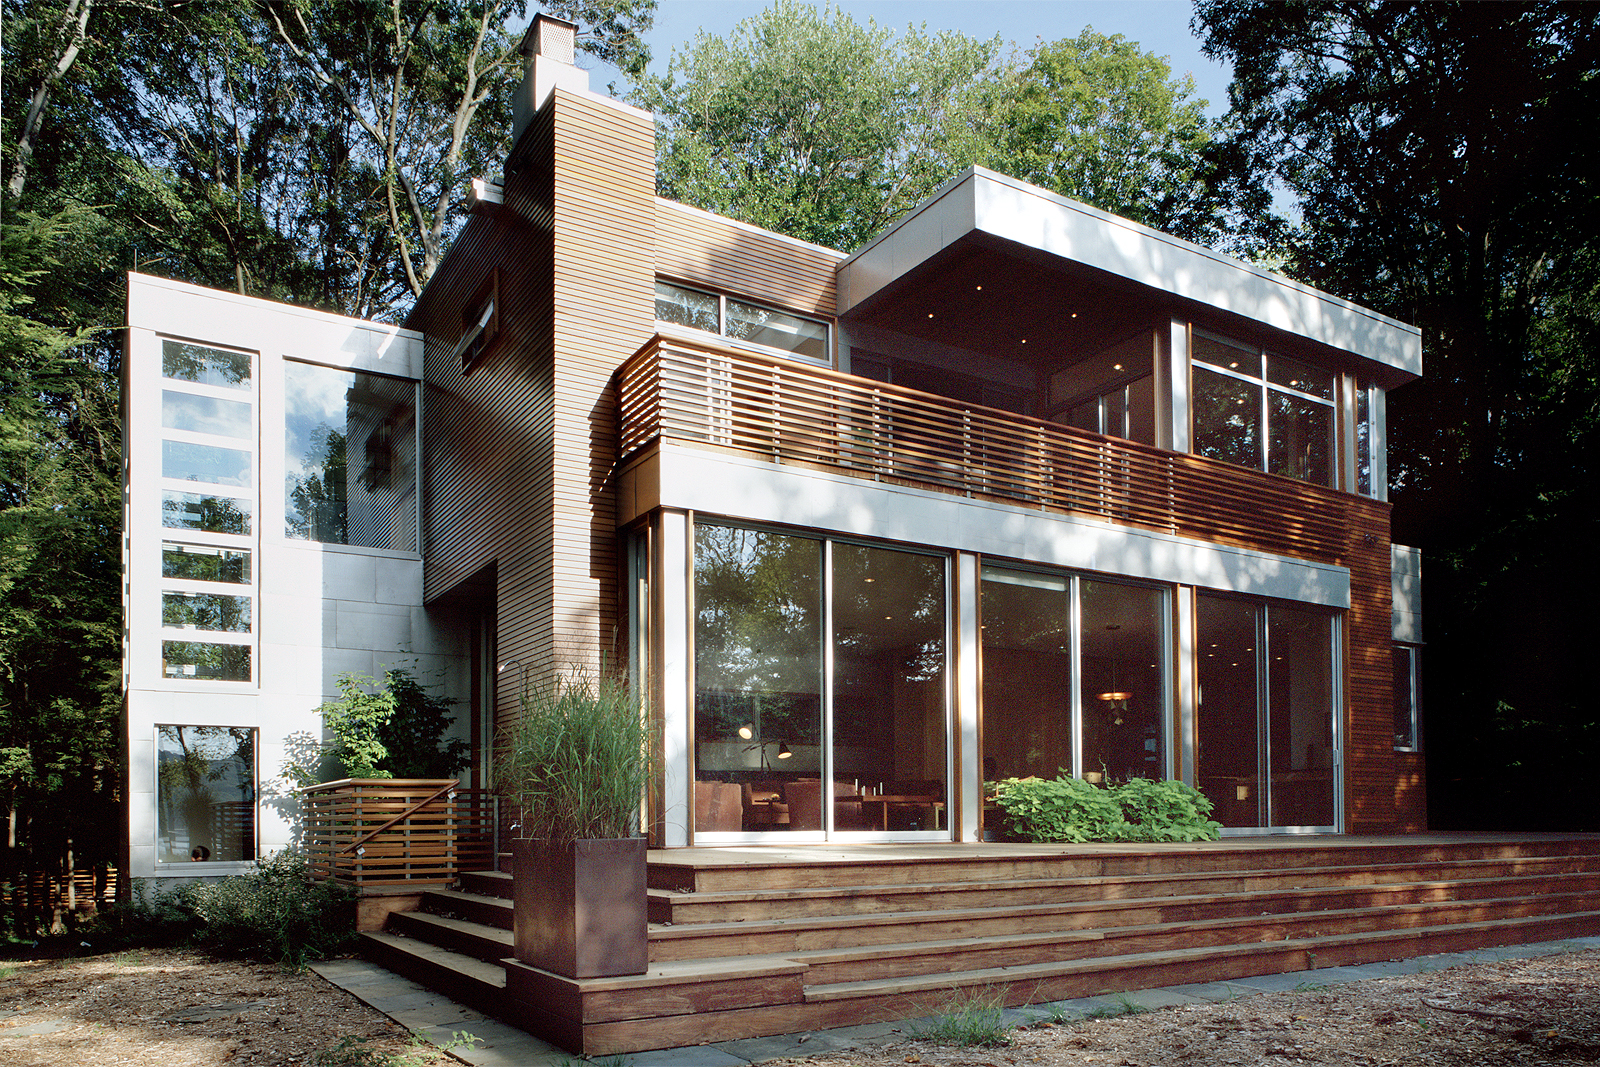 03-res4-resolution-4-architecture-modern-home-residential-lakeside-house-exterior.JPG